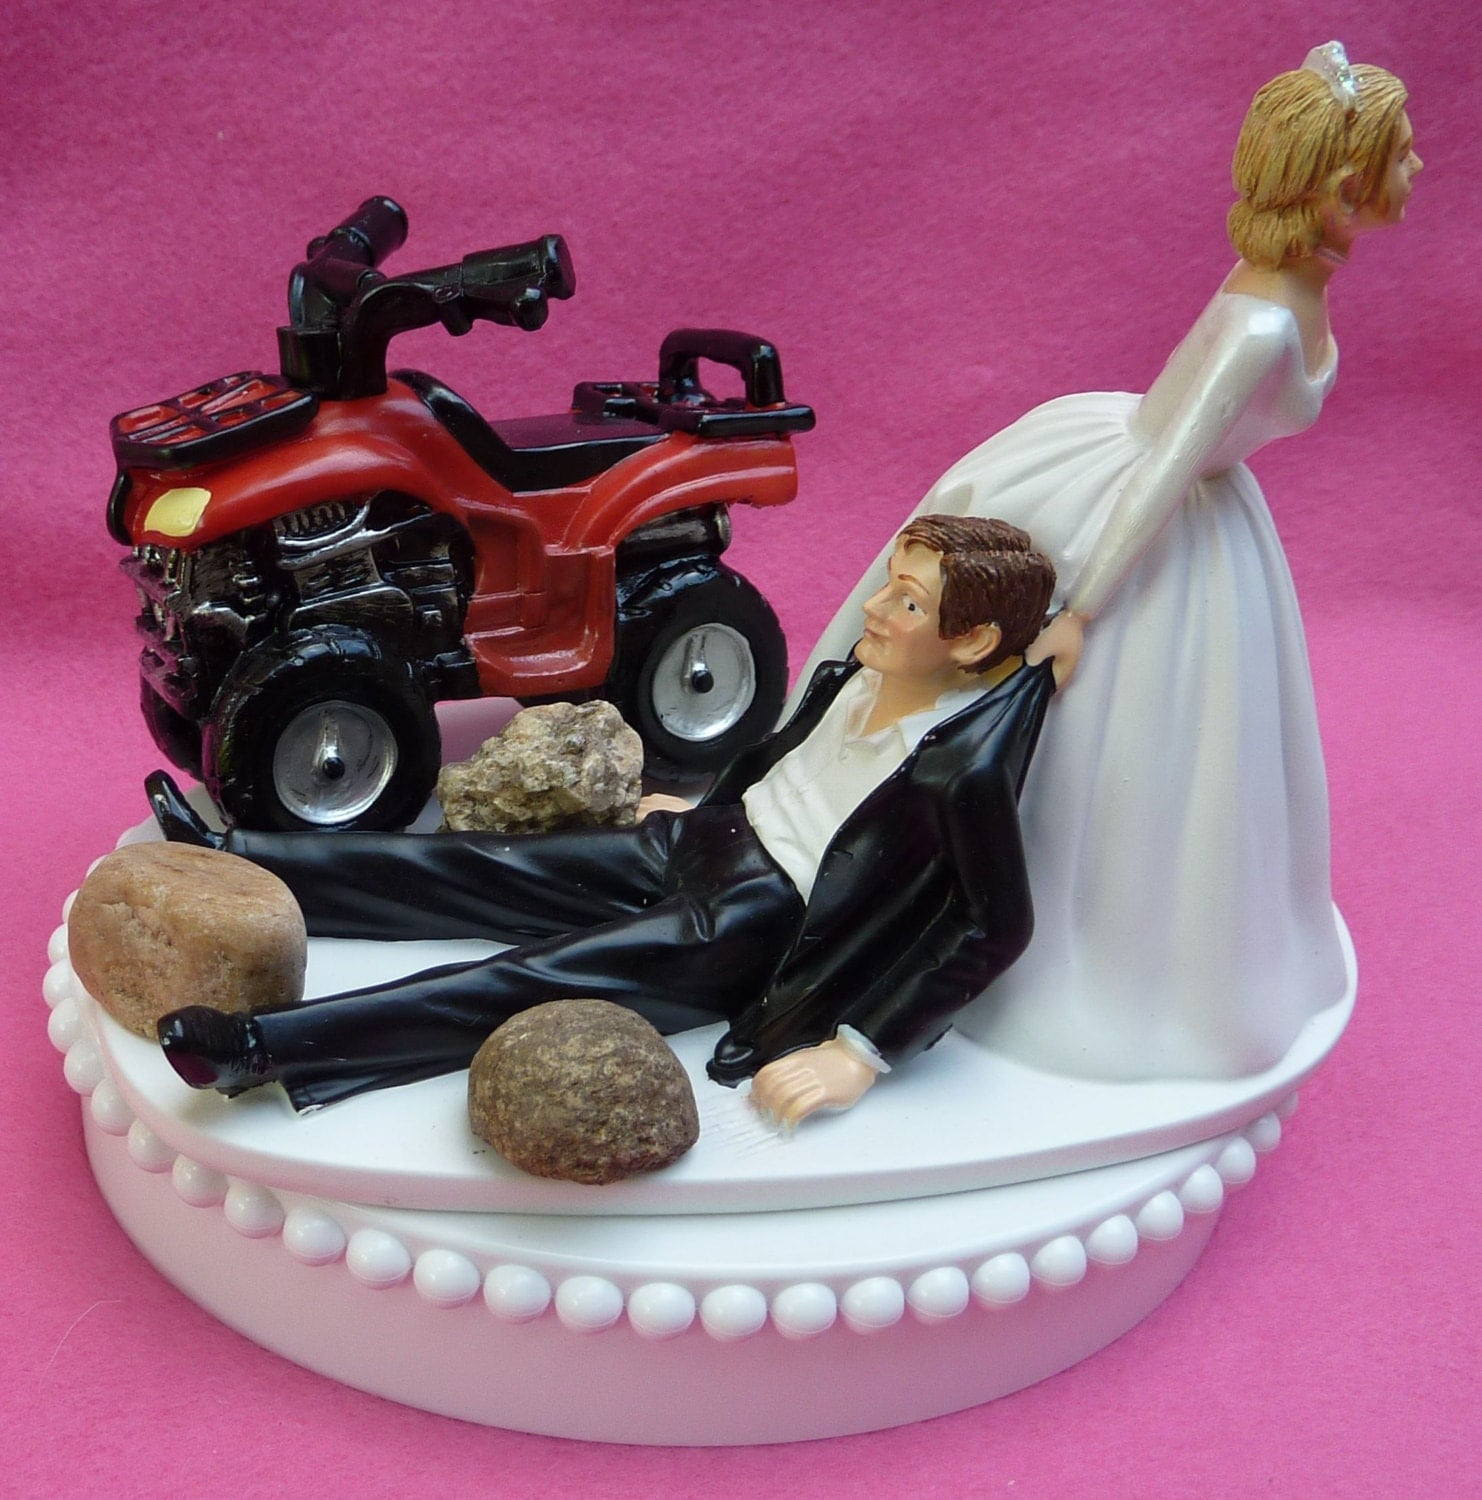 atv wedding cake topper wedding cake topper atv 4 wheeler w bridal garter road 10890